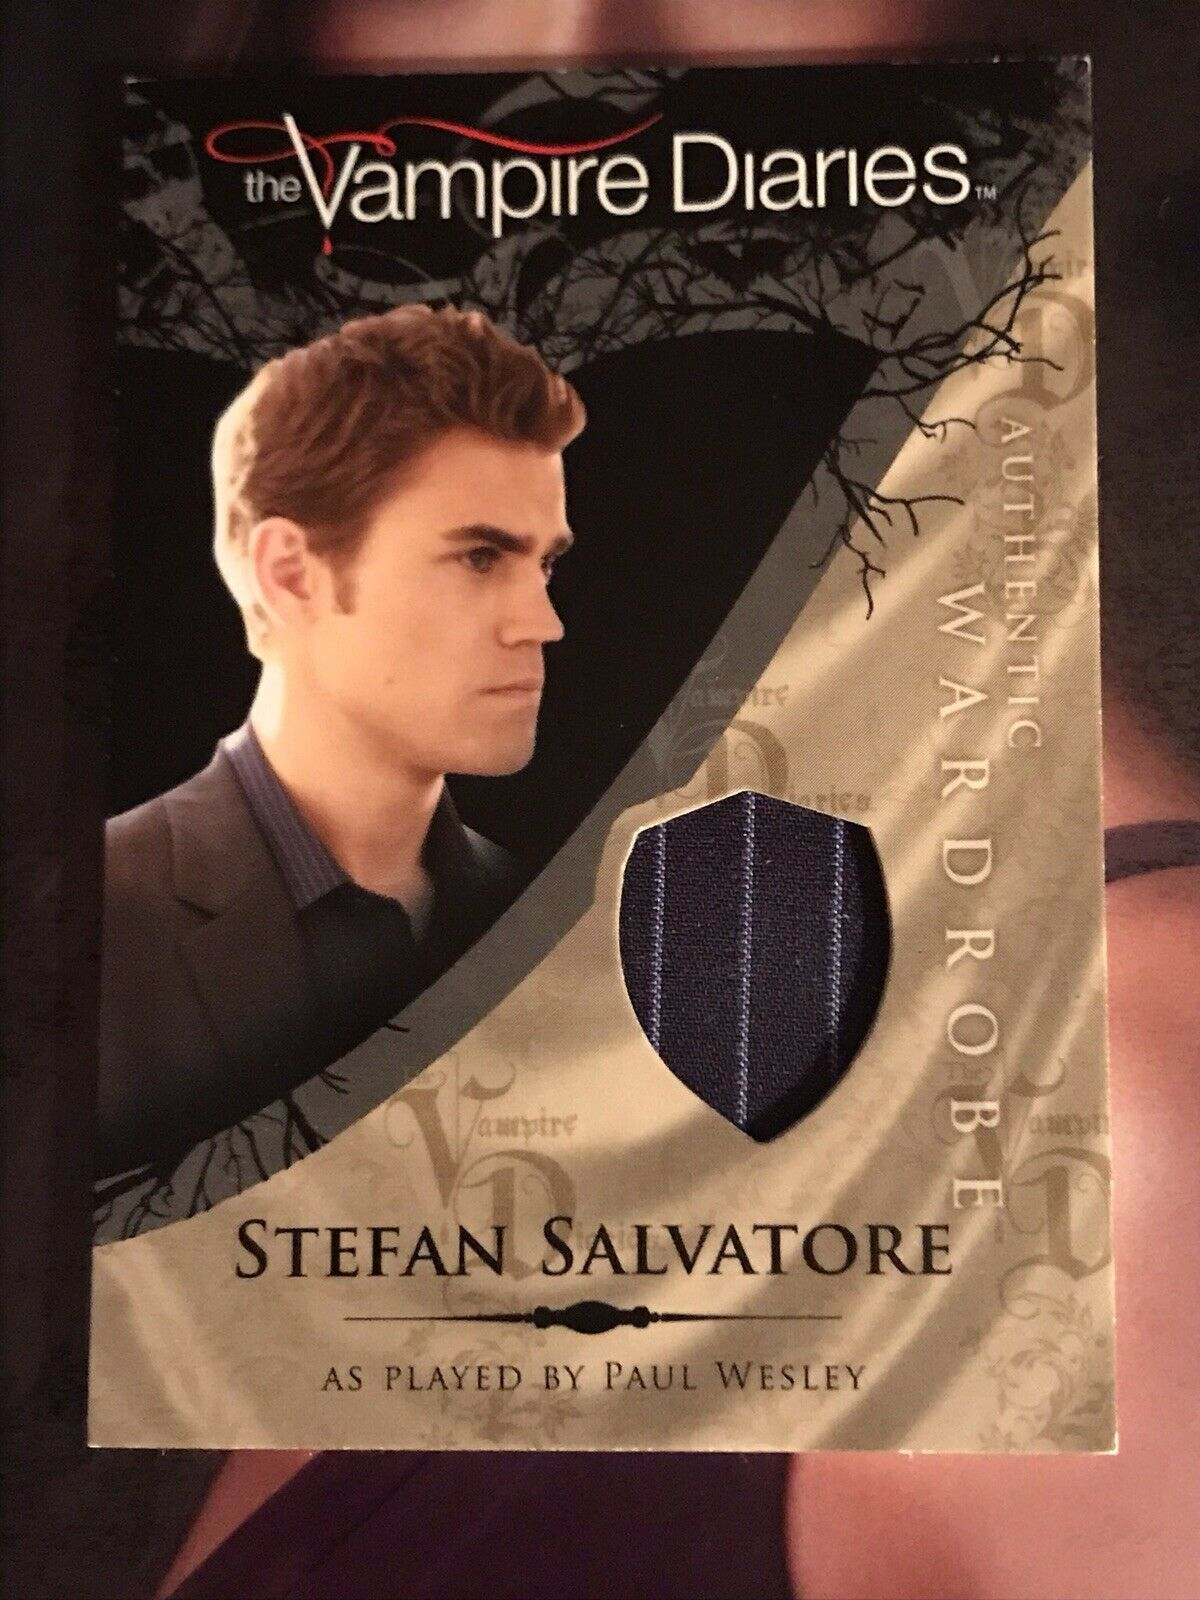 Primary image for Vampire Diaries Season 1 Wardrobe Card M2 Paul Wesley as Stefan Salvatore